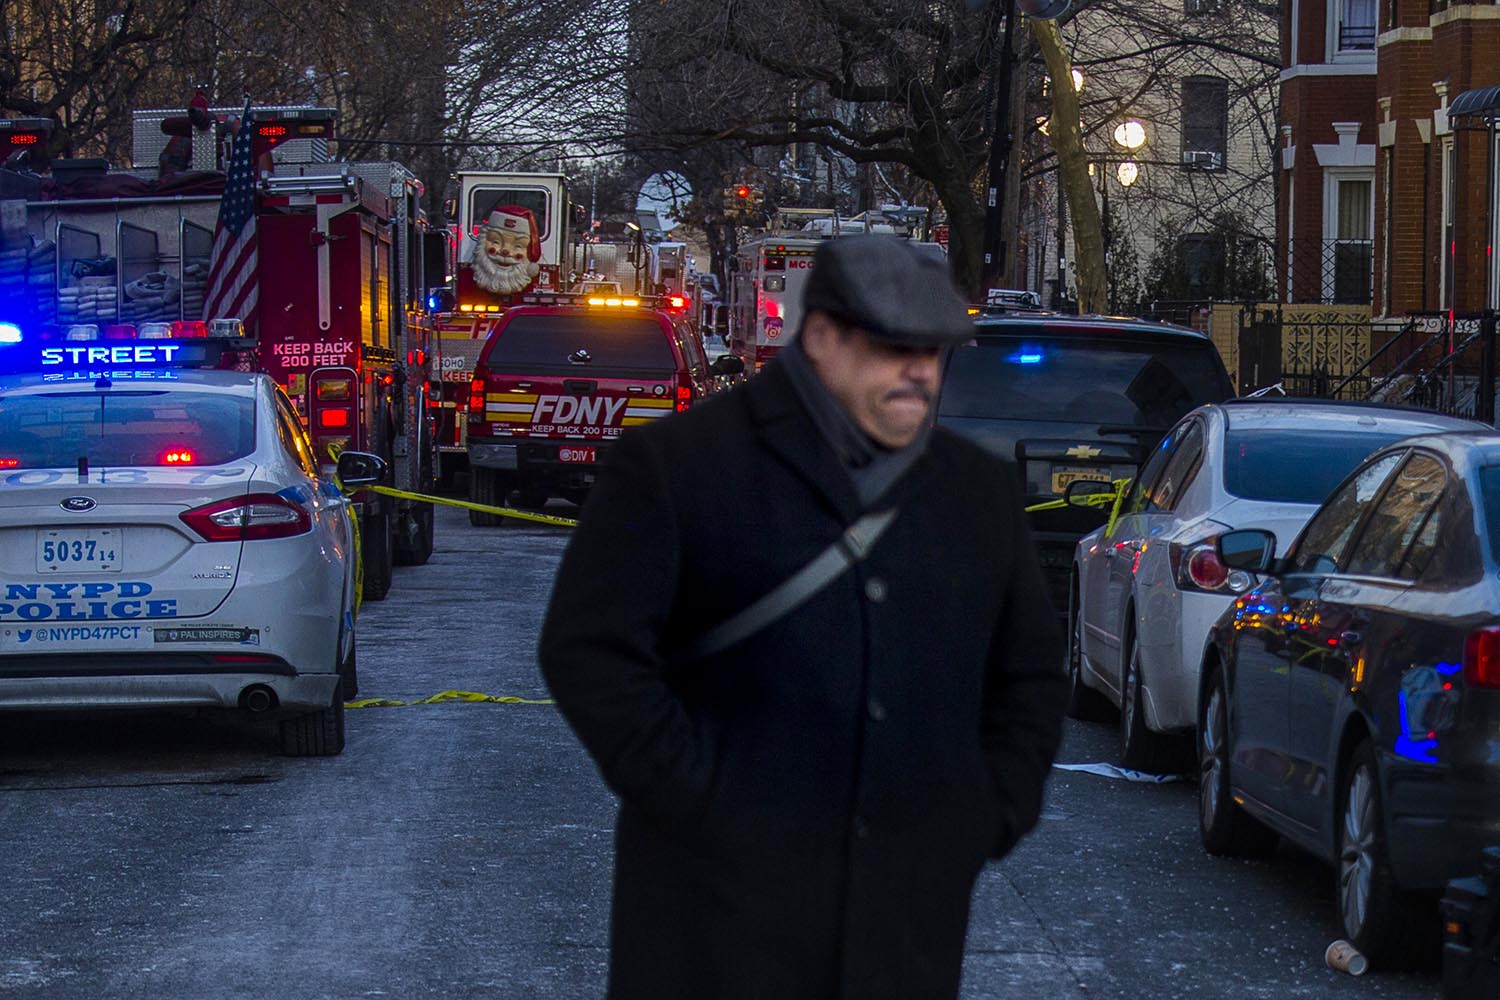 """<div class=""""meta image-caption""""><div class=""""origin-logo origin-image ap""""><span>AP</span></div><span class=""""caption-text"""">A resident leaves the scene Friday, Dec. 29, 2017, near the building where more than 10 people died in a fire on Thursday, in the Bronx borough of New York. (AP Photo/Andres Kudacki)</span></div>"""